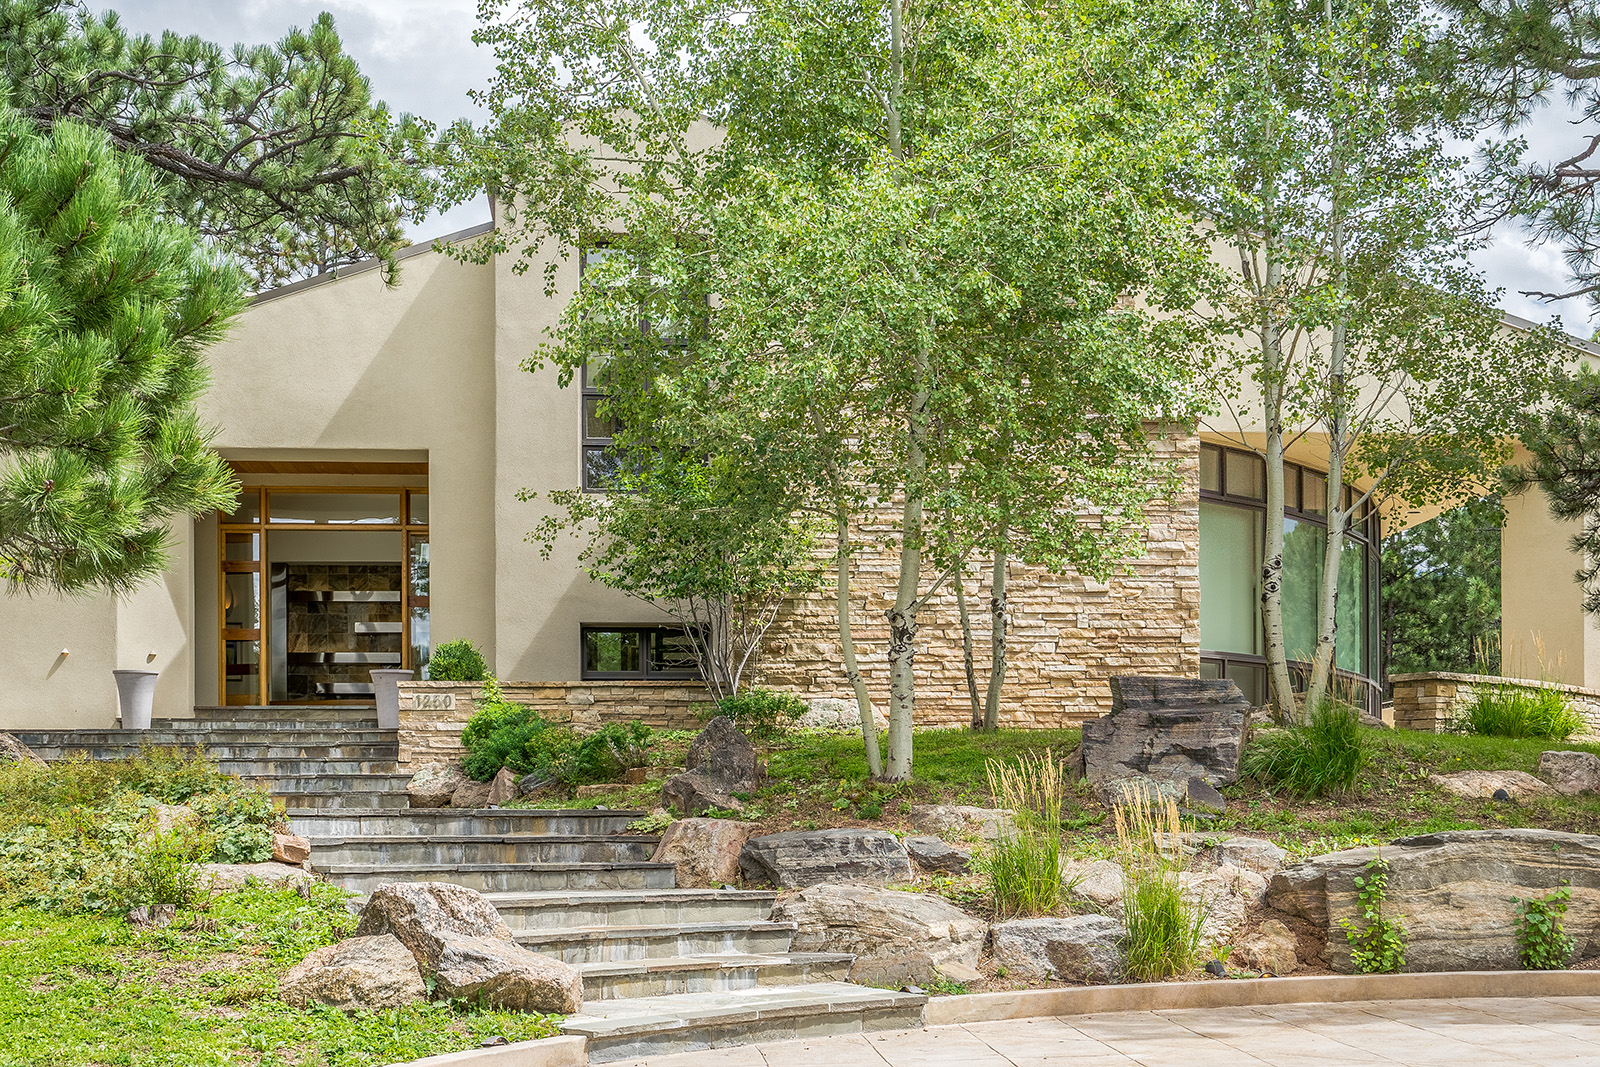 1250 Dolan Drive, Monument, CO. Listed by LIV Sotheby's International Realty for $1,500,000.